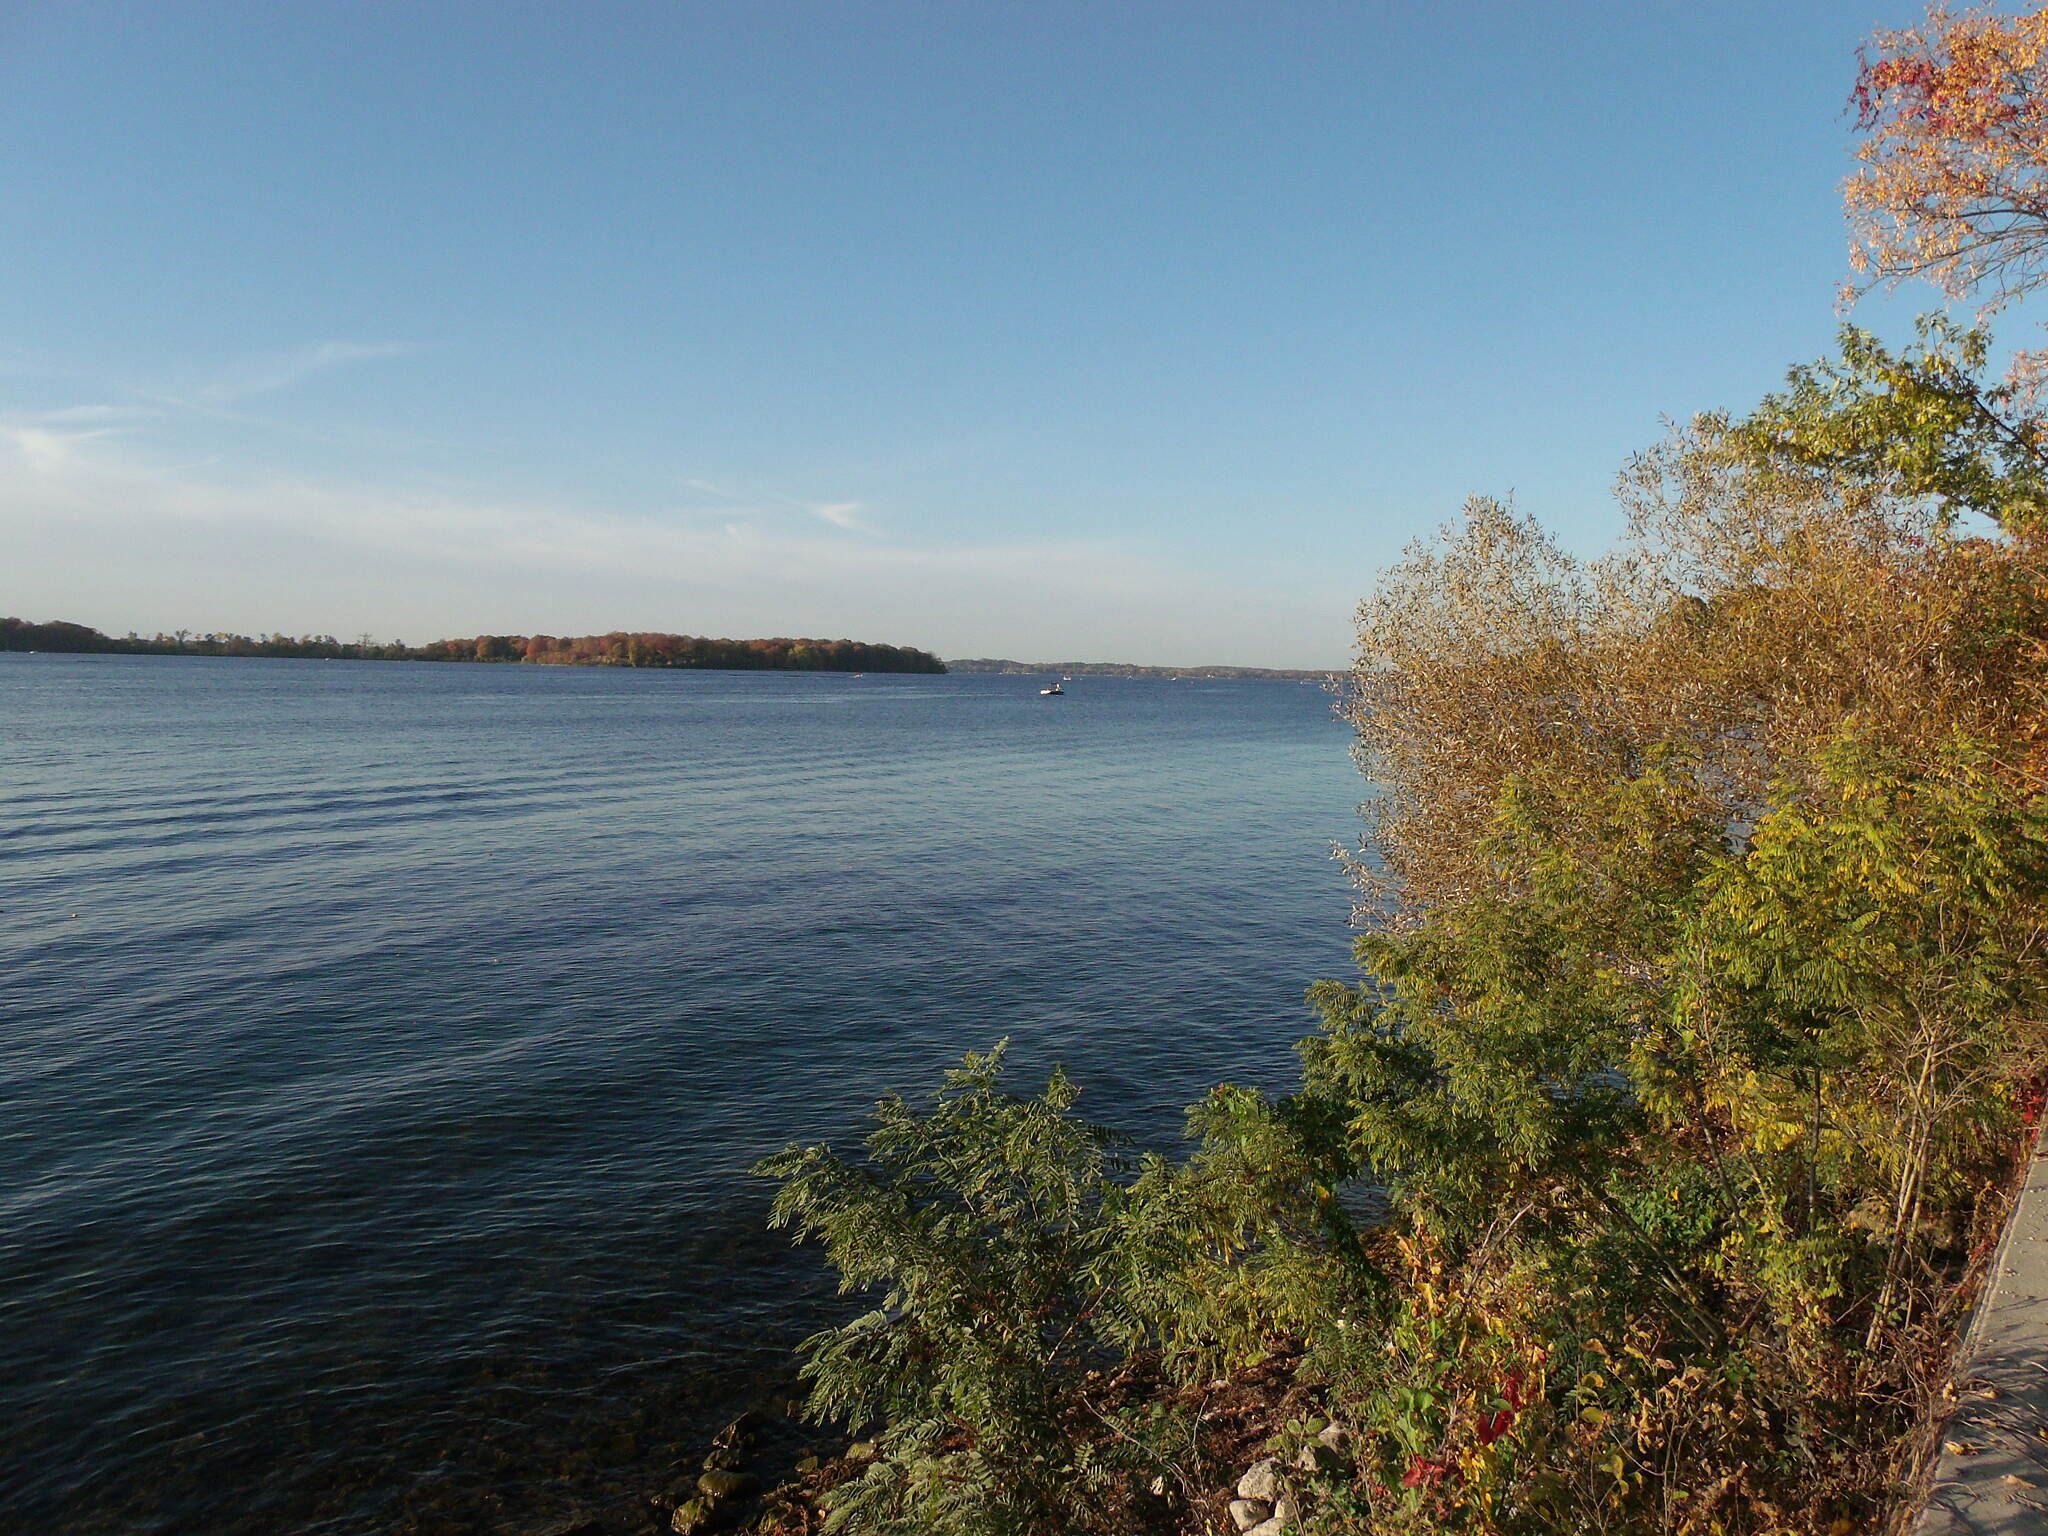 Minnesota River Bluffs LRT Regional Trail Lake Minnetonka.